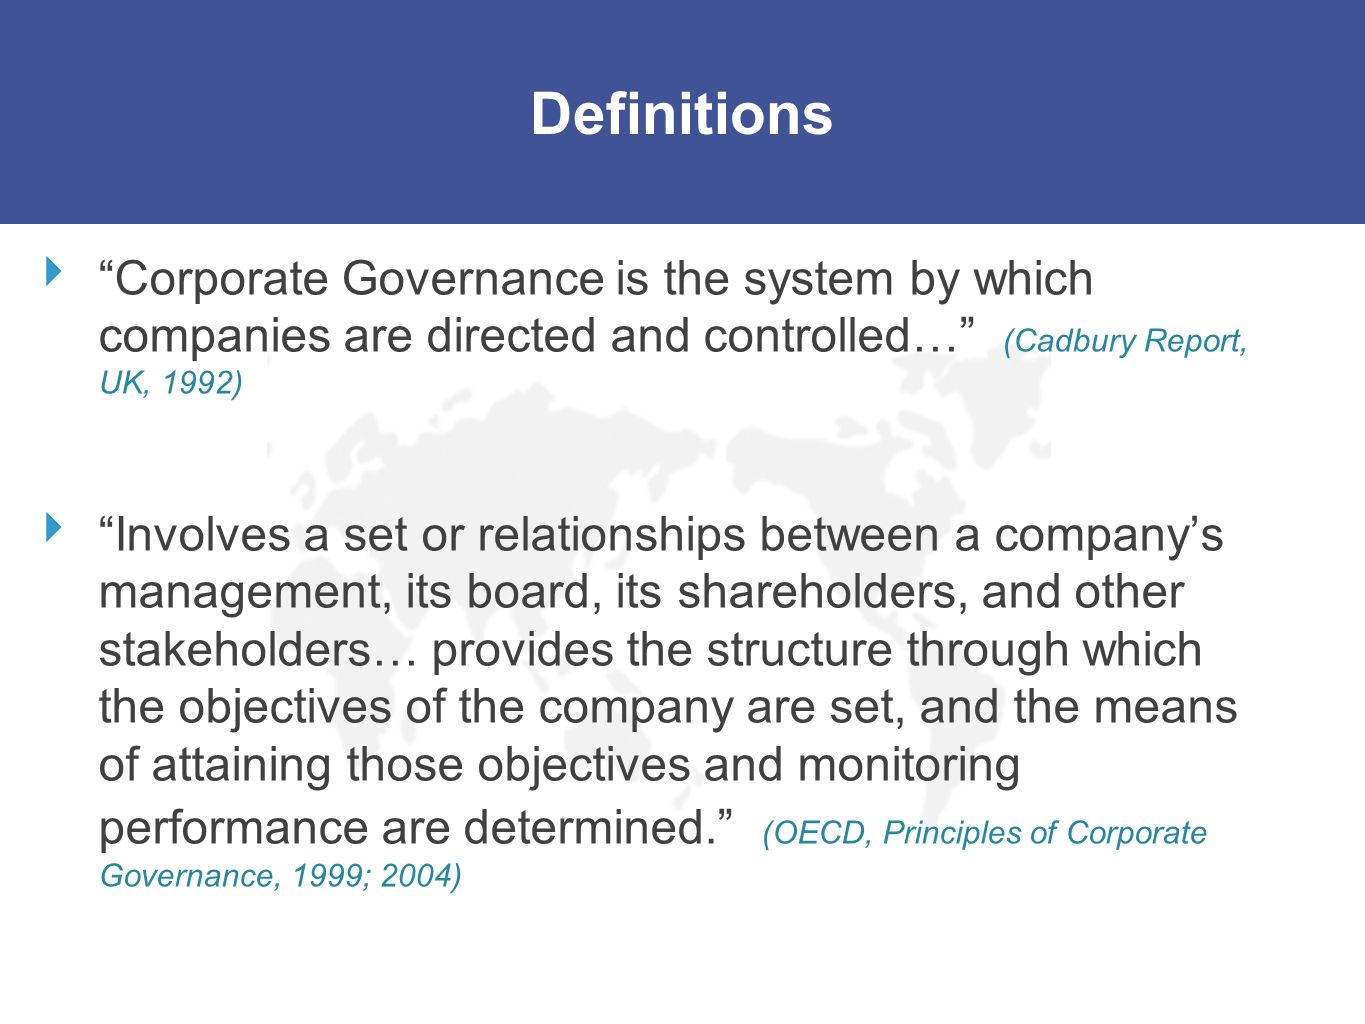 Definitions Corporate Governance is the system by which companies are directed and controlled… (Cadbury Report, UK, 1992)